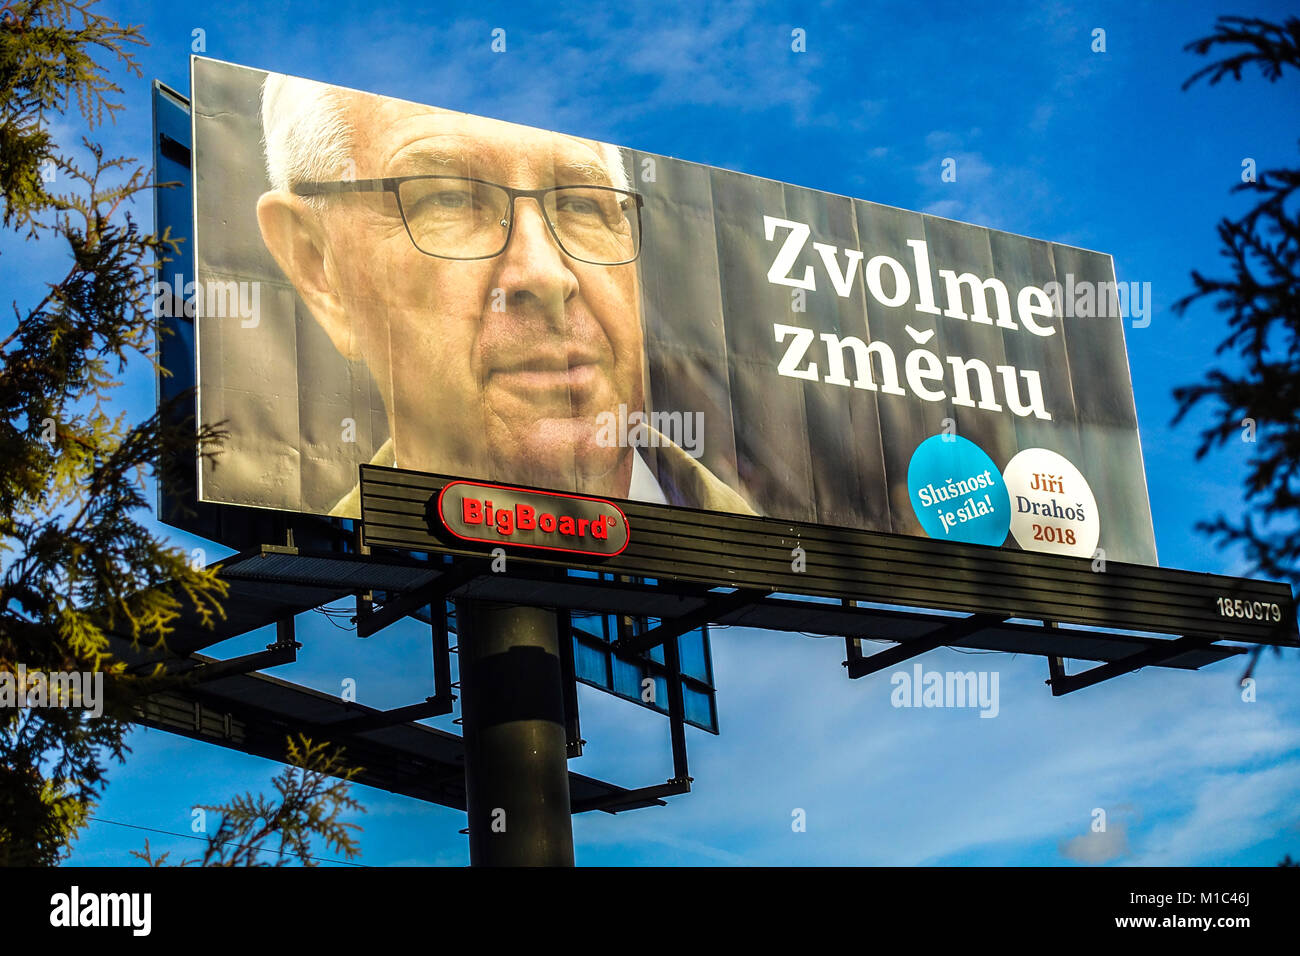 Czech elections, Presidential campaign by Jiri Drahos. Vote change, Czech Republic - Stock Image